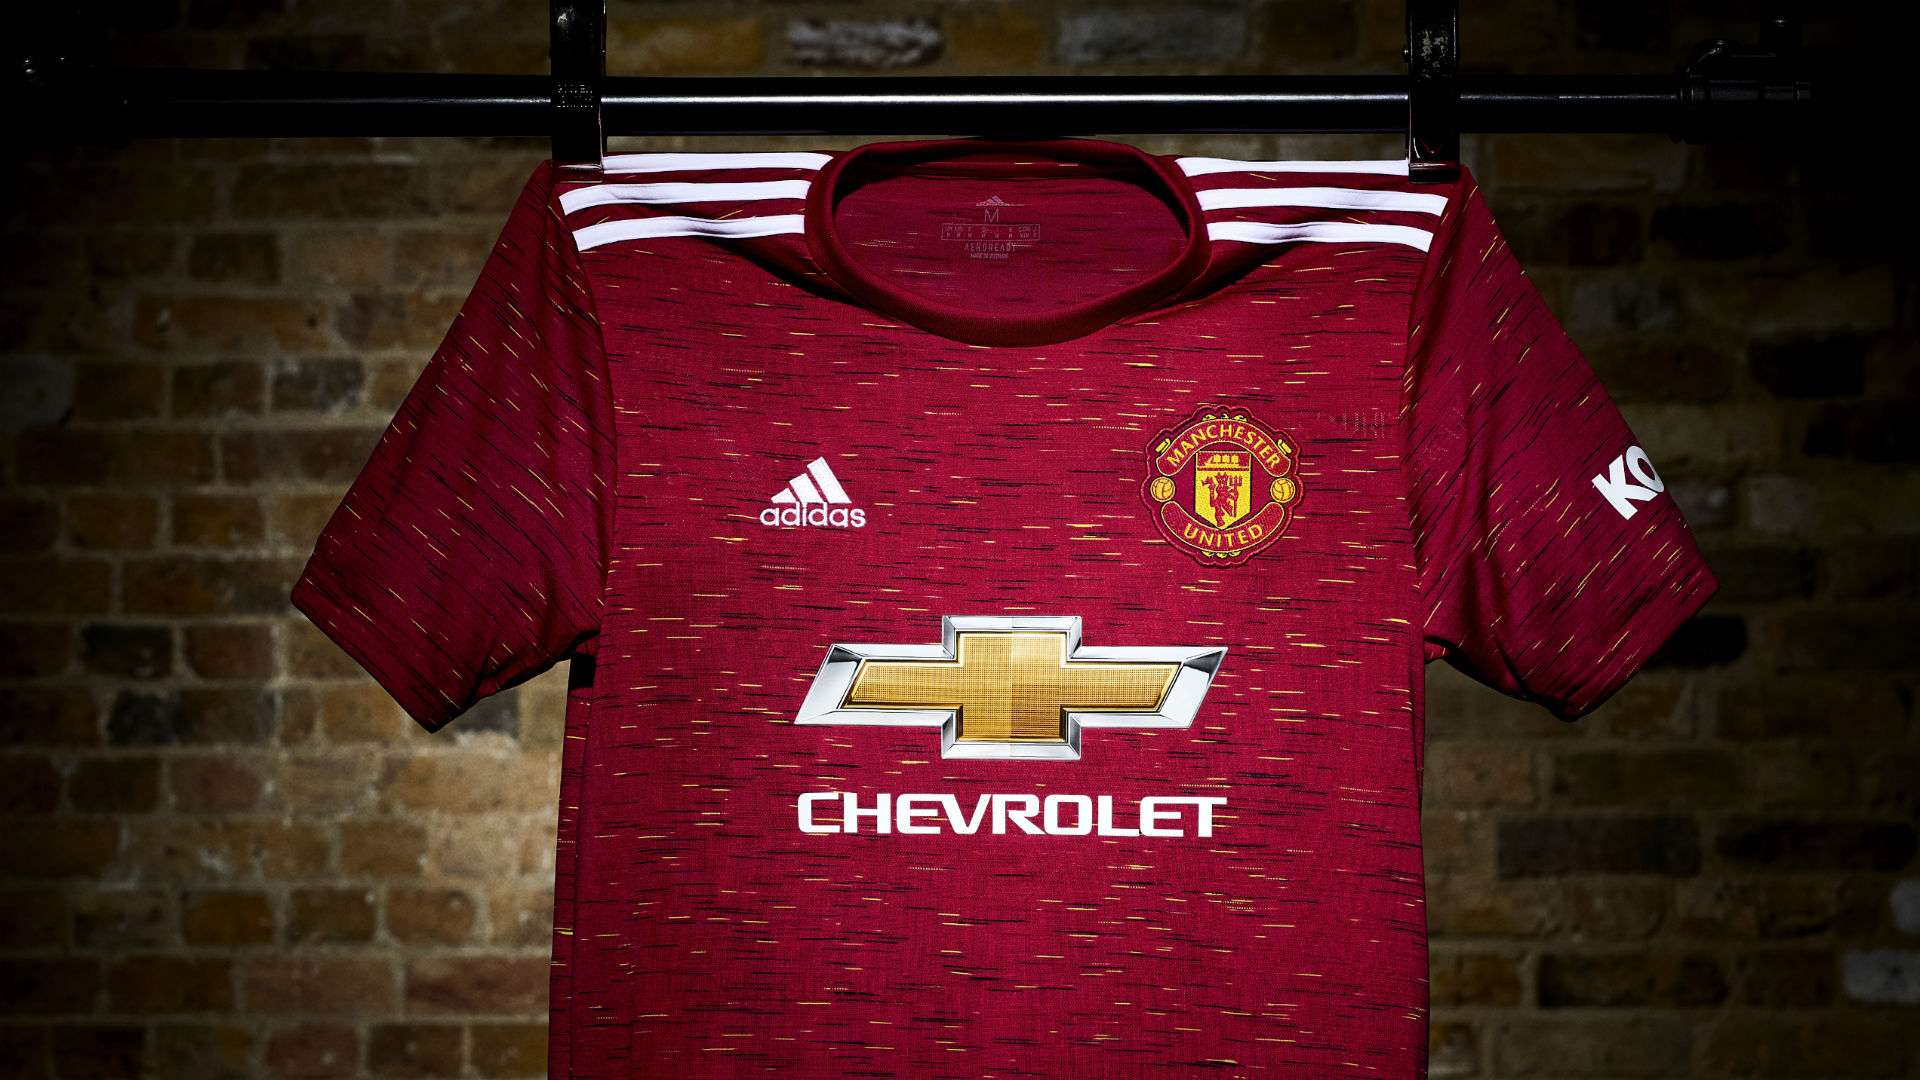 Manchester United S 2020 21 Kit New Home Away And Third Jersey Styles And Release Dates Goal Com